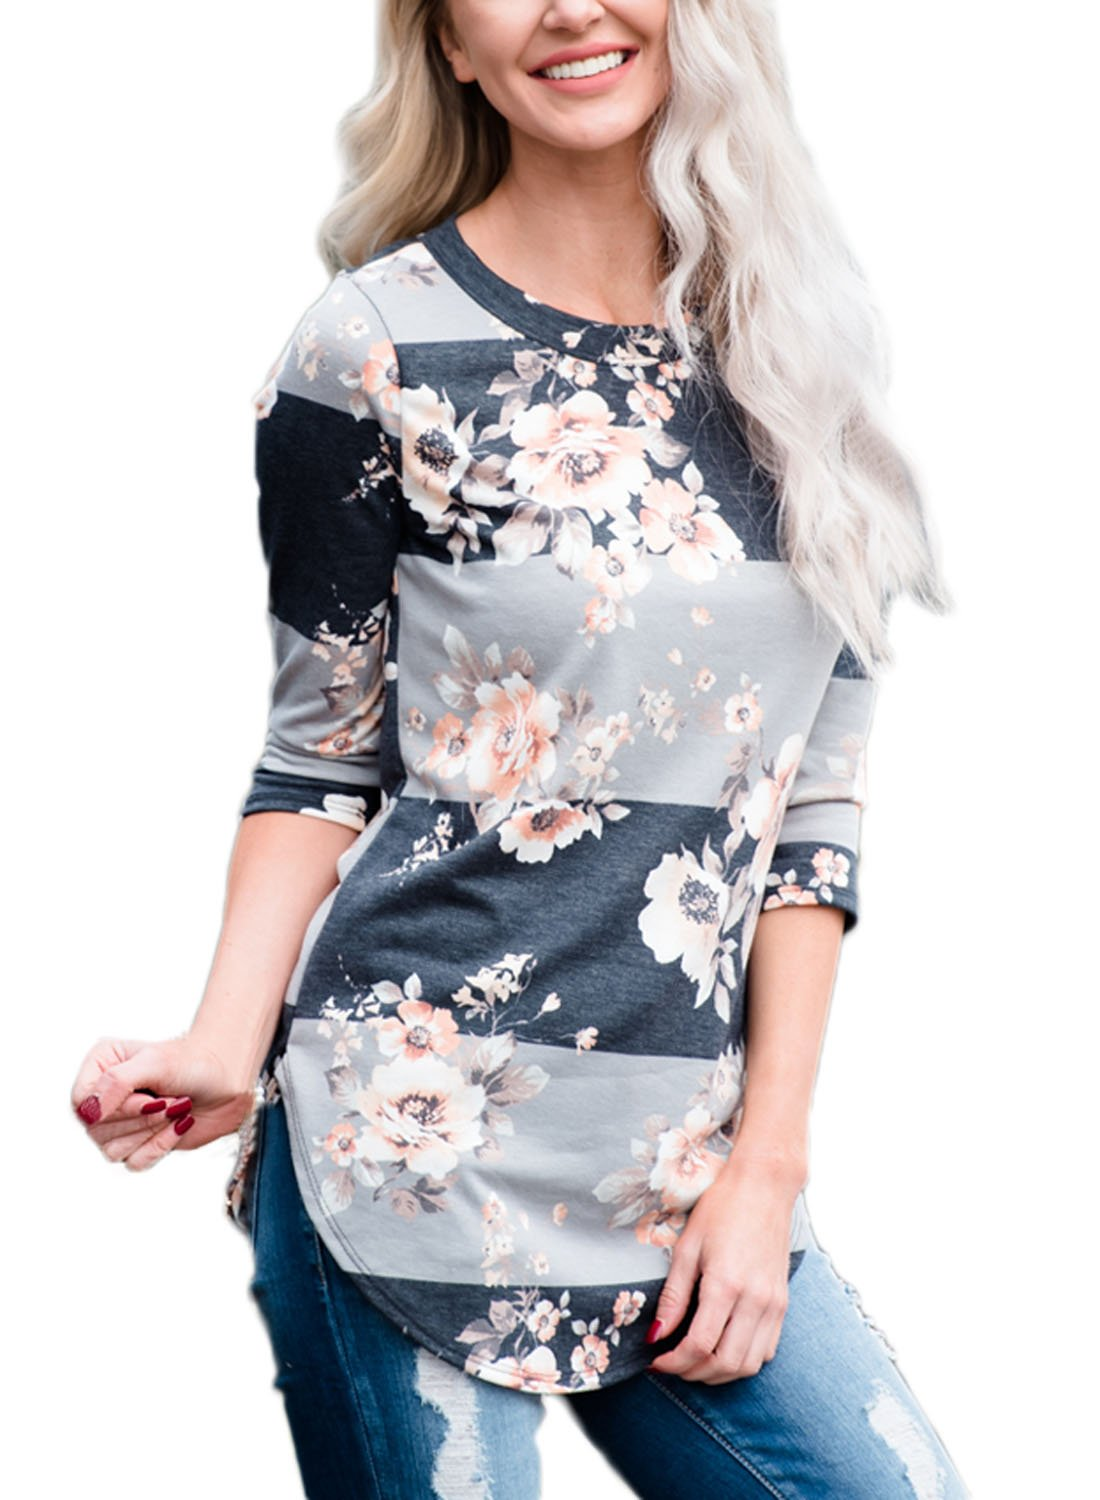 Asvivid Womens Summer 3/4 Sleeve Blouses Crew Neck Floral Print T Shirt Tops Plus Size 2X Grey by Asvivid